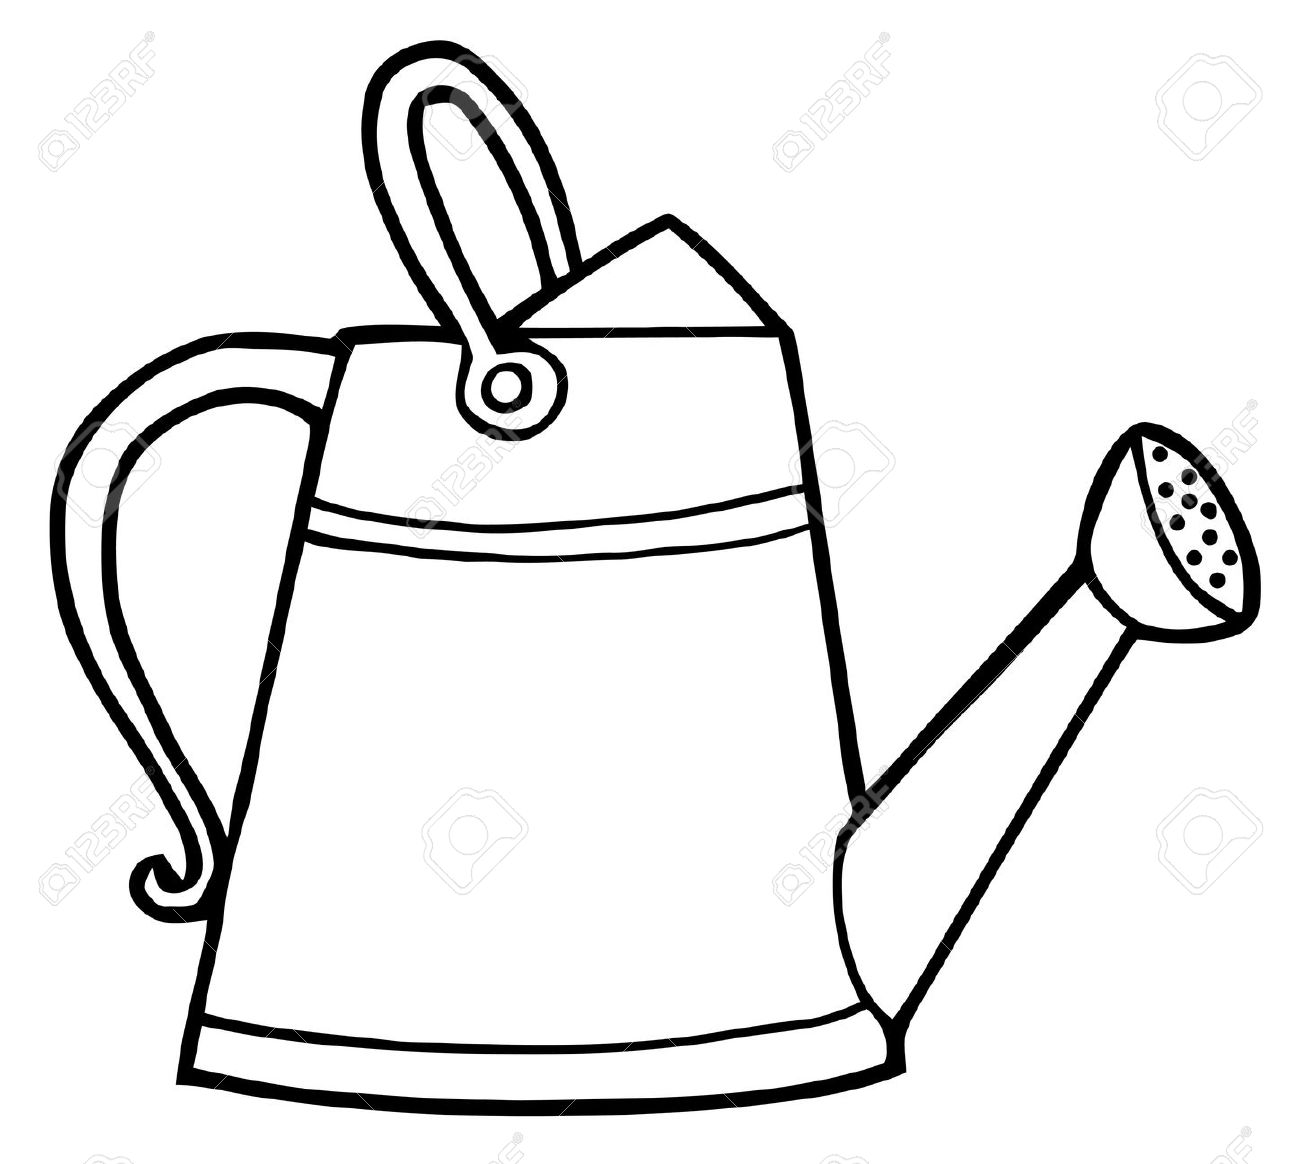 Watering can with flowers clipart black and white stock Water Can Clipart   Free download best Water Can Clipart on ... stock